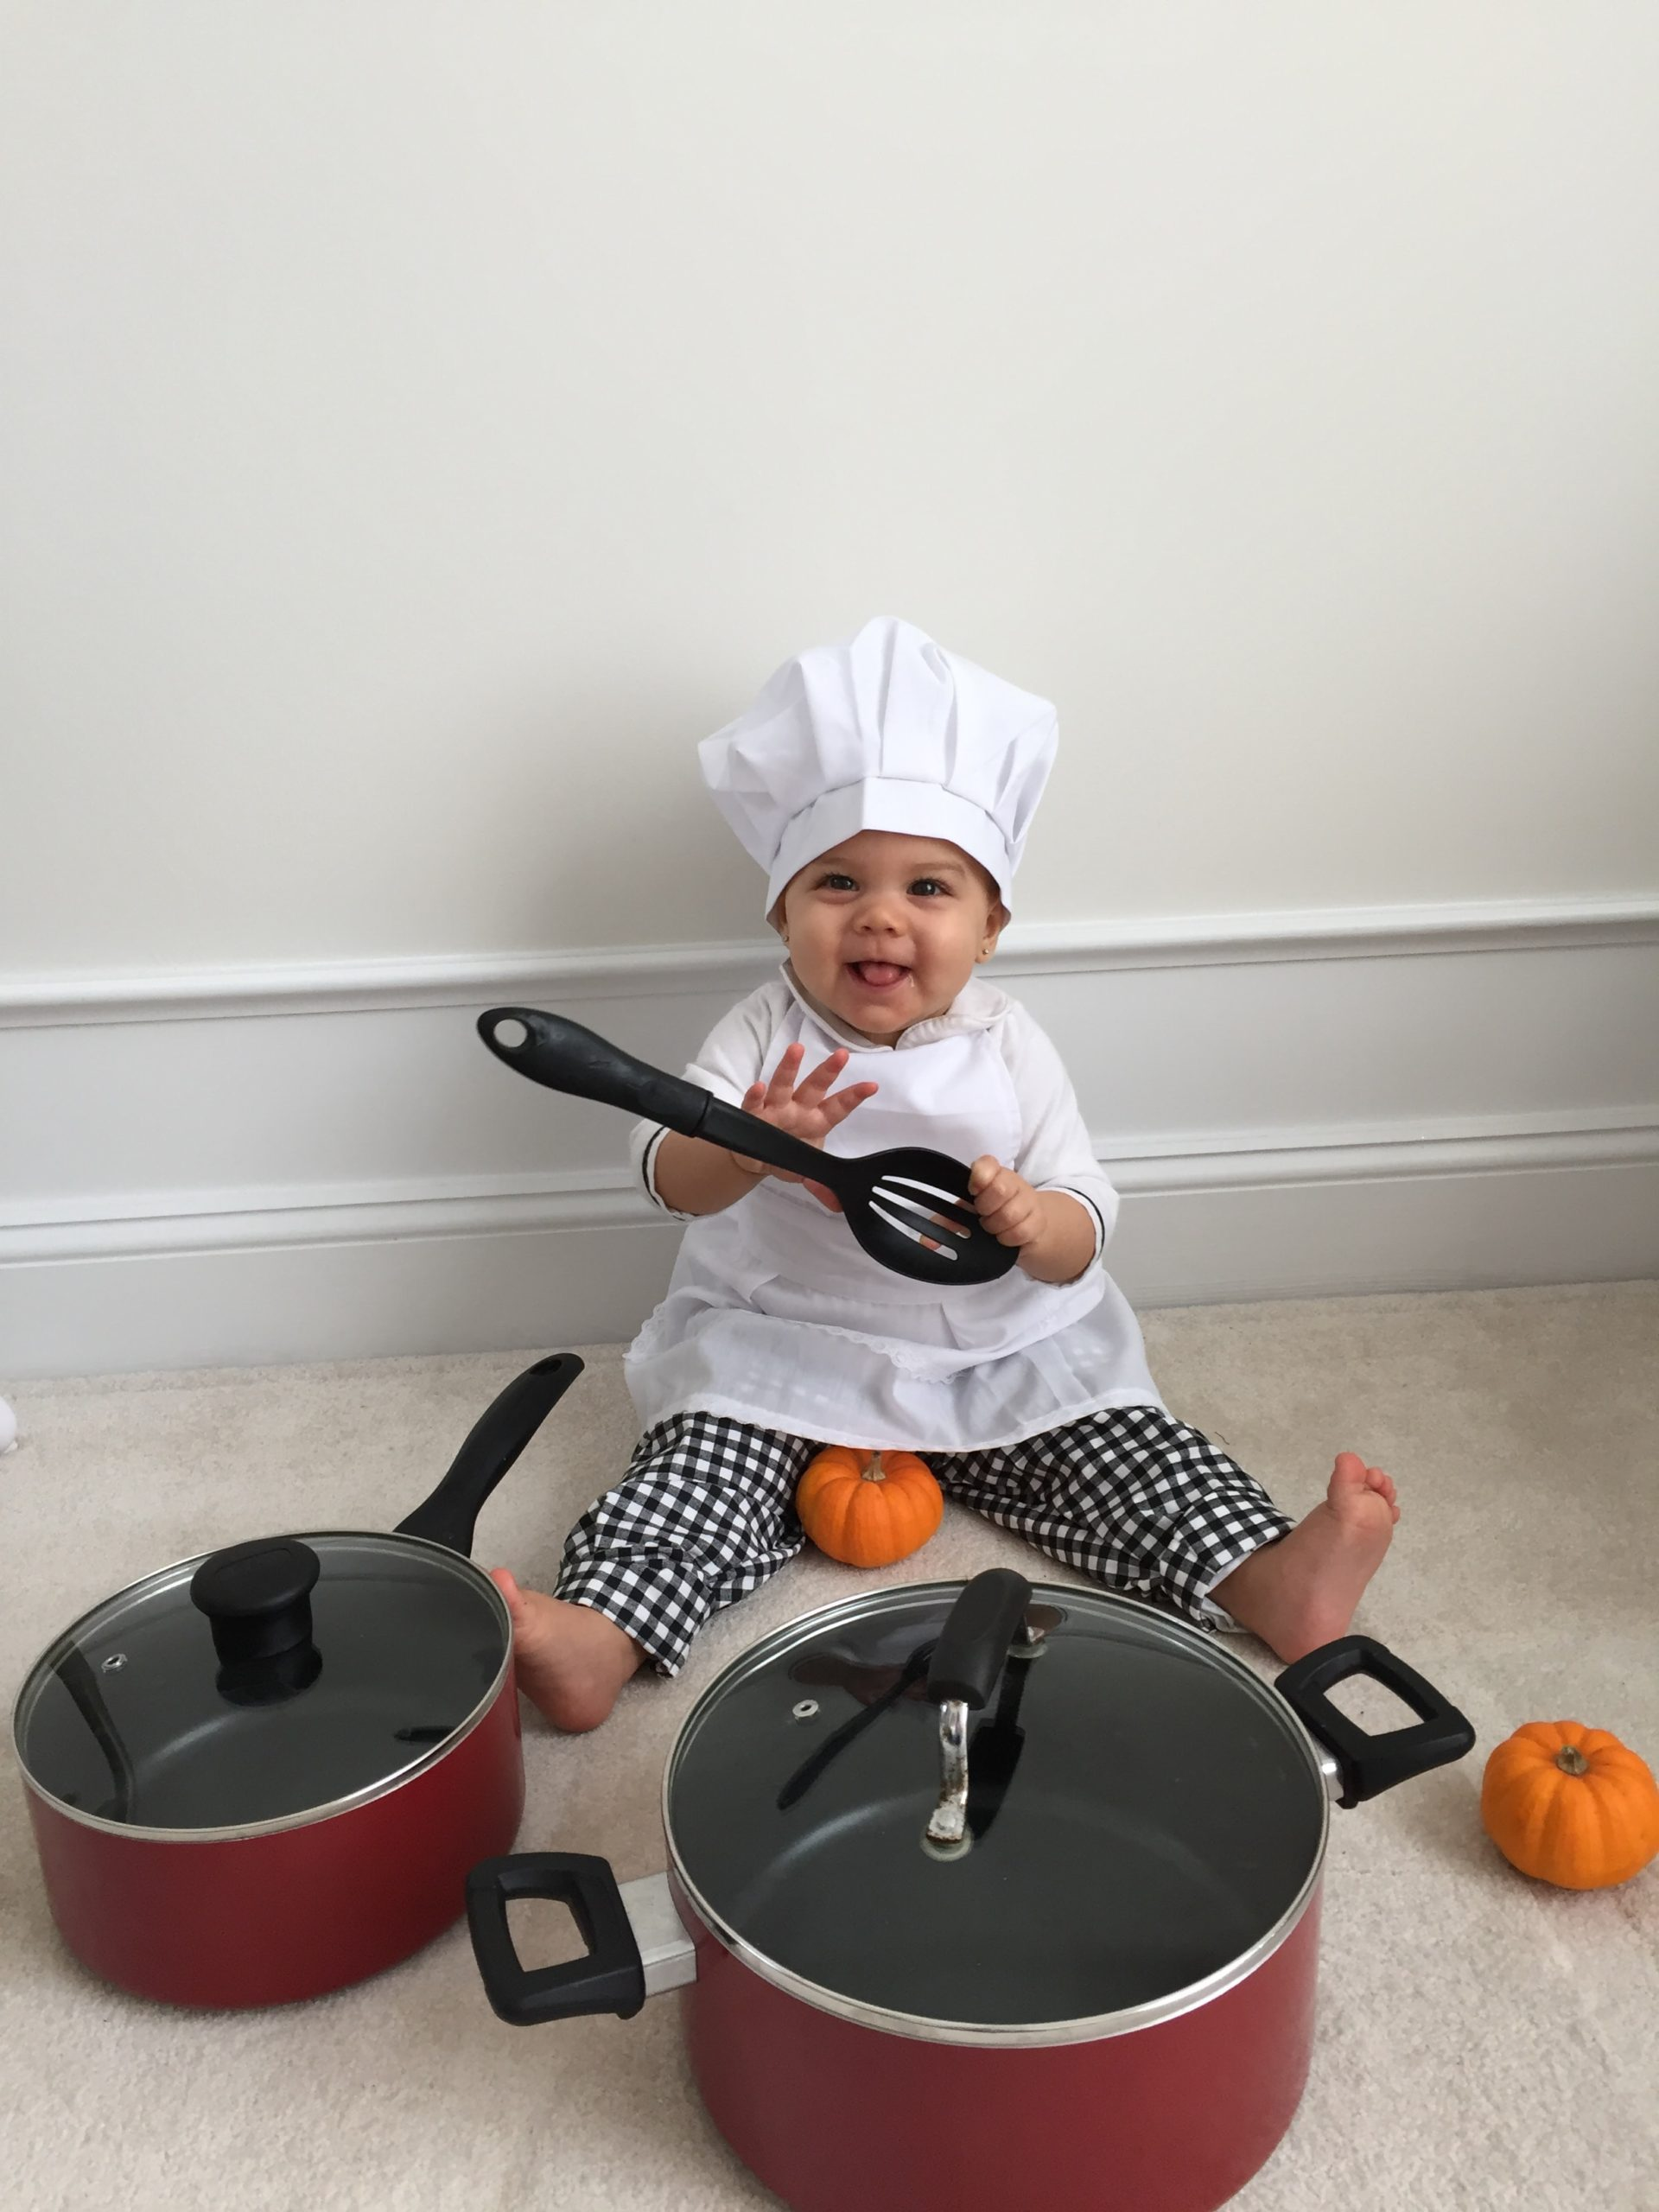 Tips for young chefs